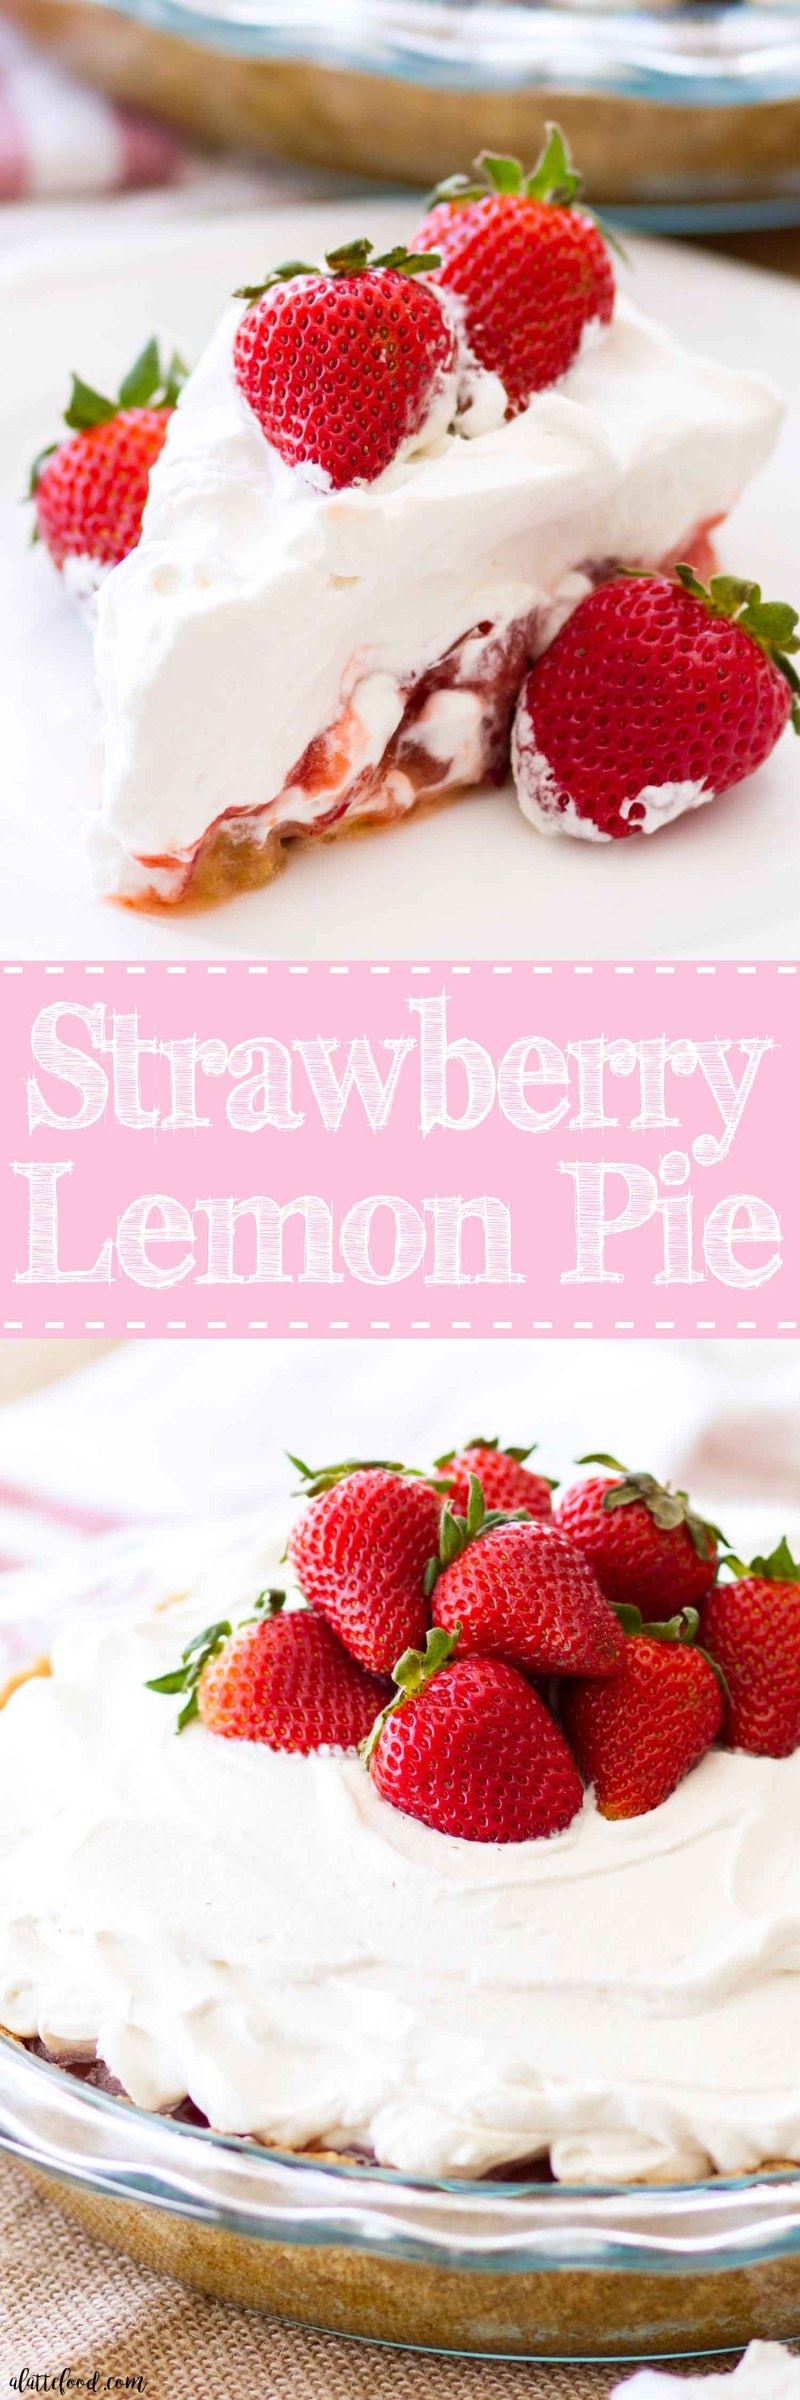 This Strawberry Lemon Pie is made with fresh strawberries, lemon curd, and a sweet graham cracker crust! This strawberry pie is super simple to make, sweet and tangy, and the perfect summer dessert! Plus, it's topped with a homemade whipped cream that's to die for!